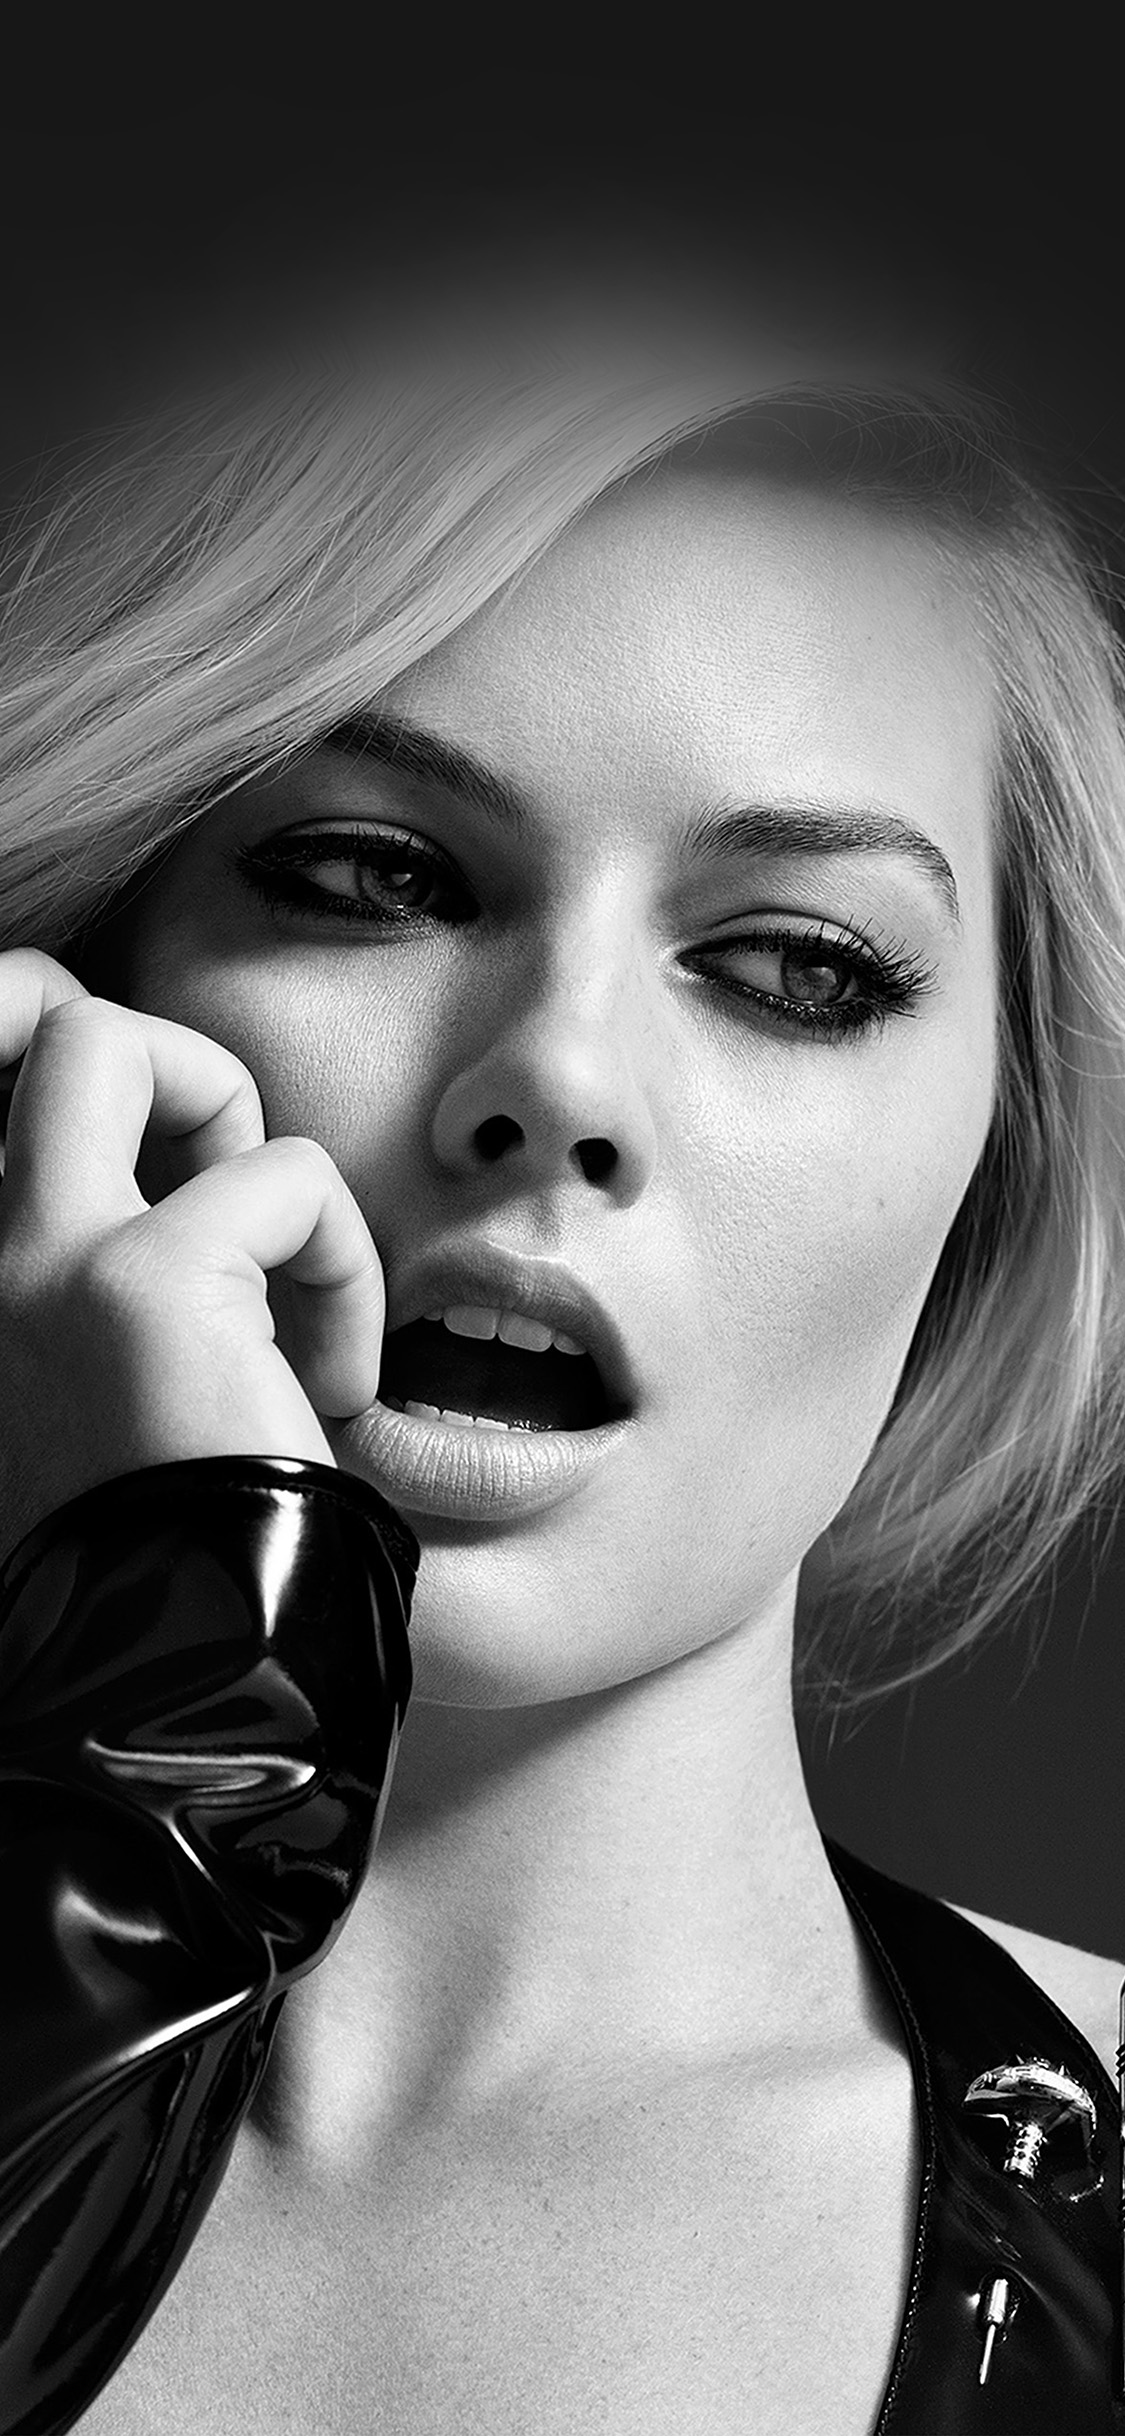 iPhonexpapers.com-Apple-iPhone-wallpaper-hp54-margot-robbie-celebrity-girl-bw